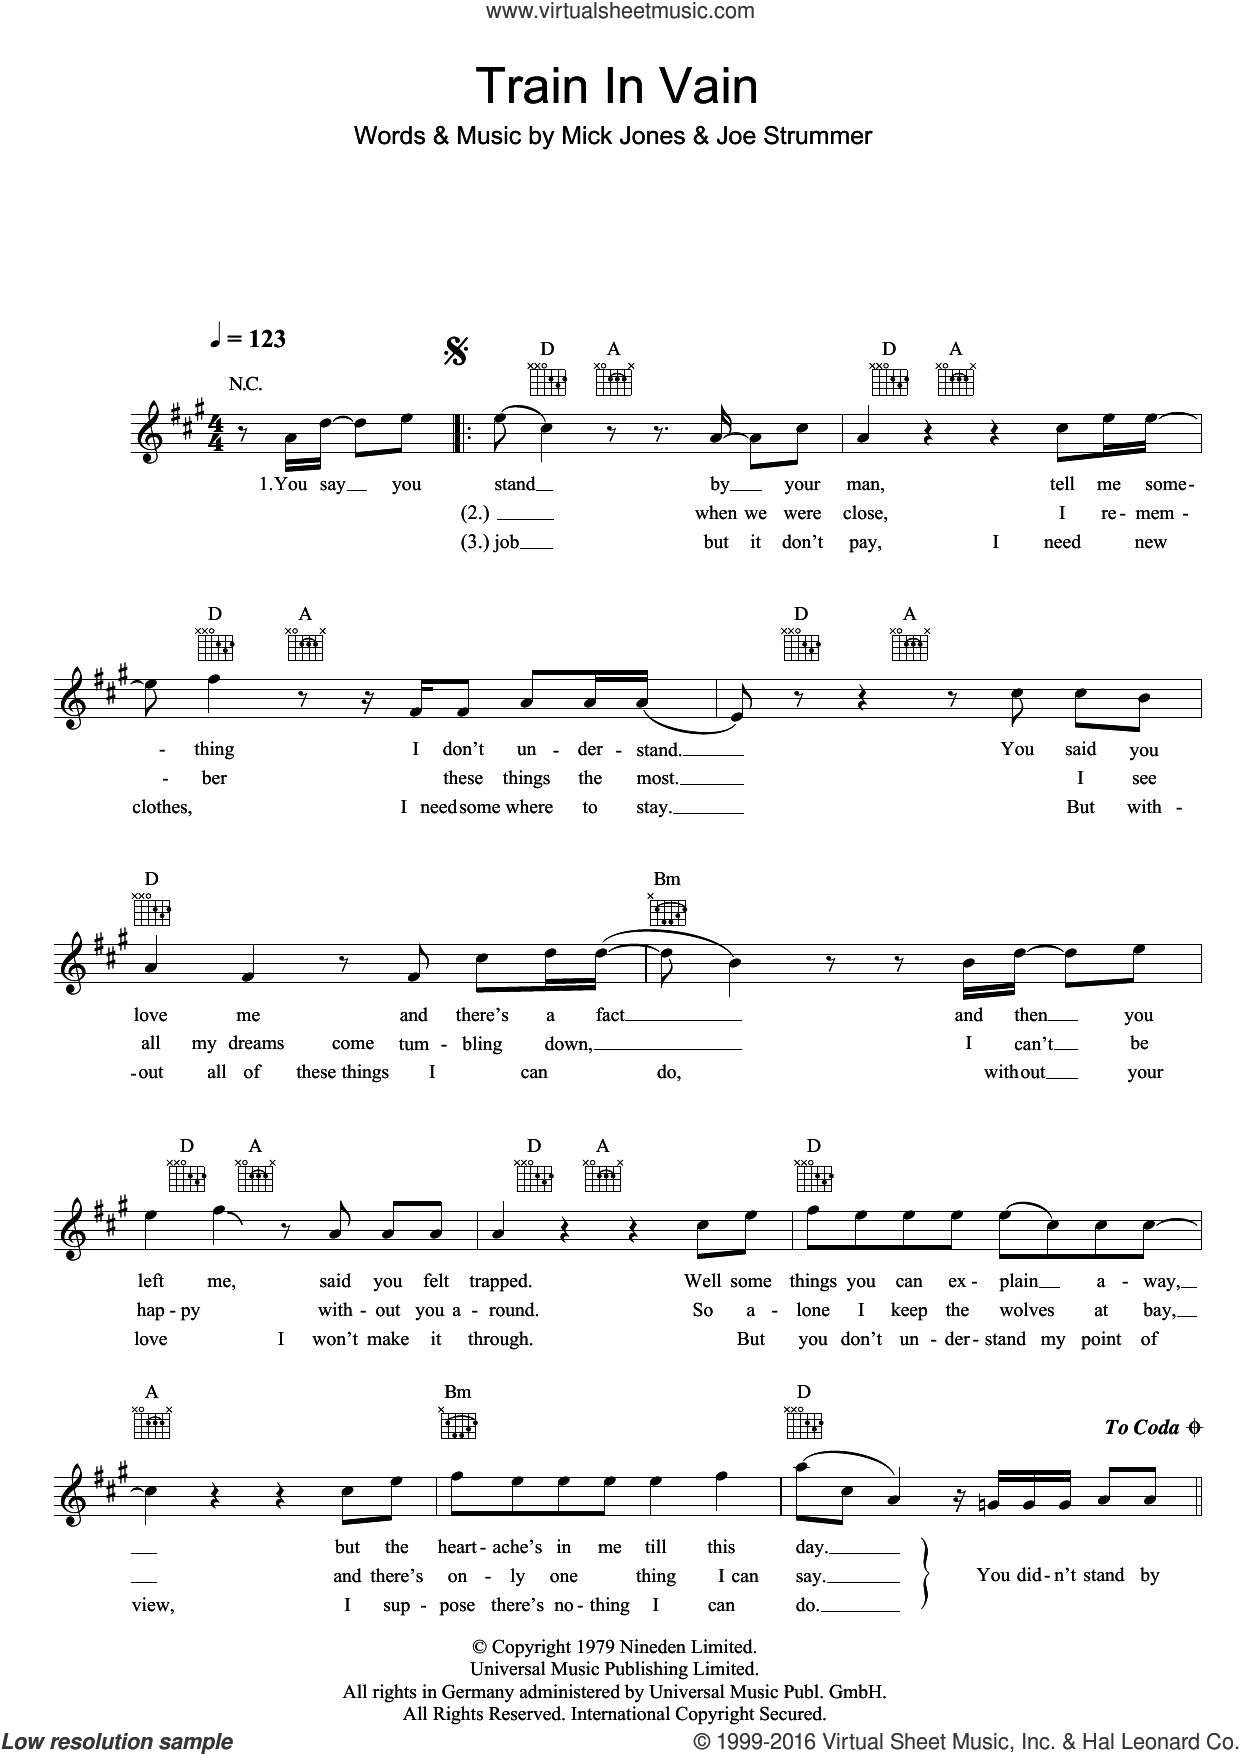 Train In Vain sheet music for voice and other instruments (fake book) by The Clash, Joe Strummer and Mick Jones, intermediate skill level